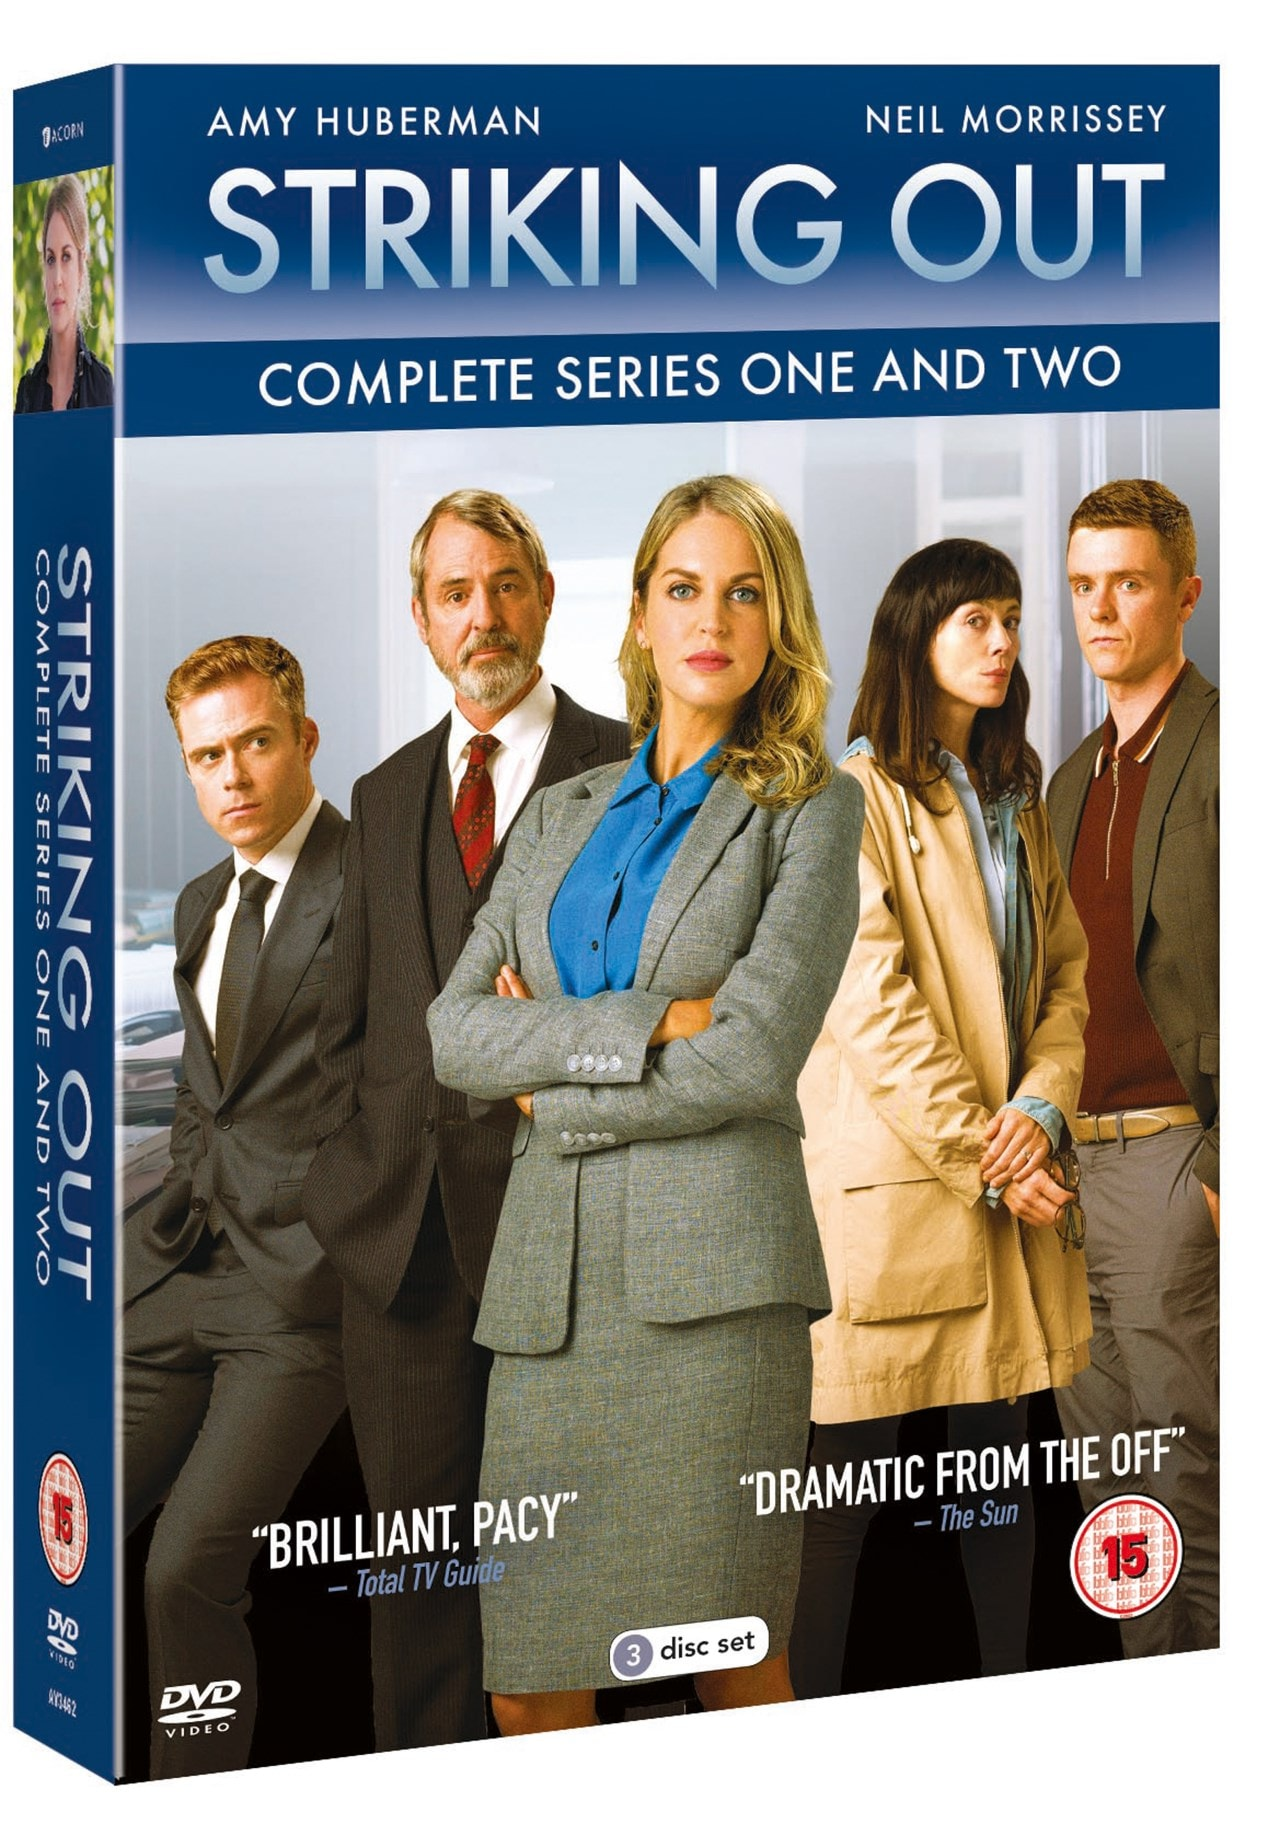 Striking Out: Complete Series One and Two - 2